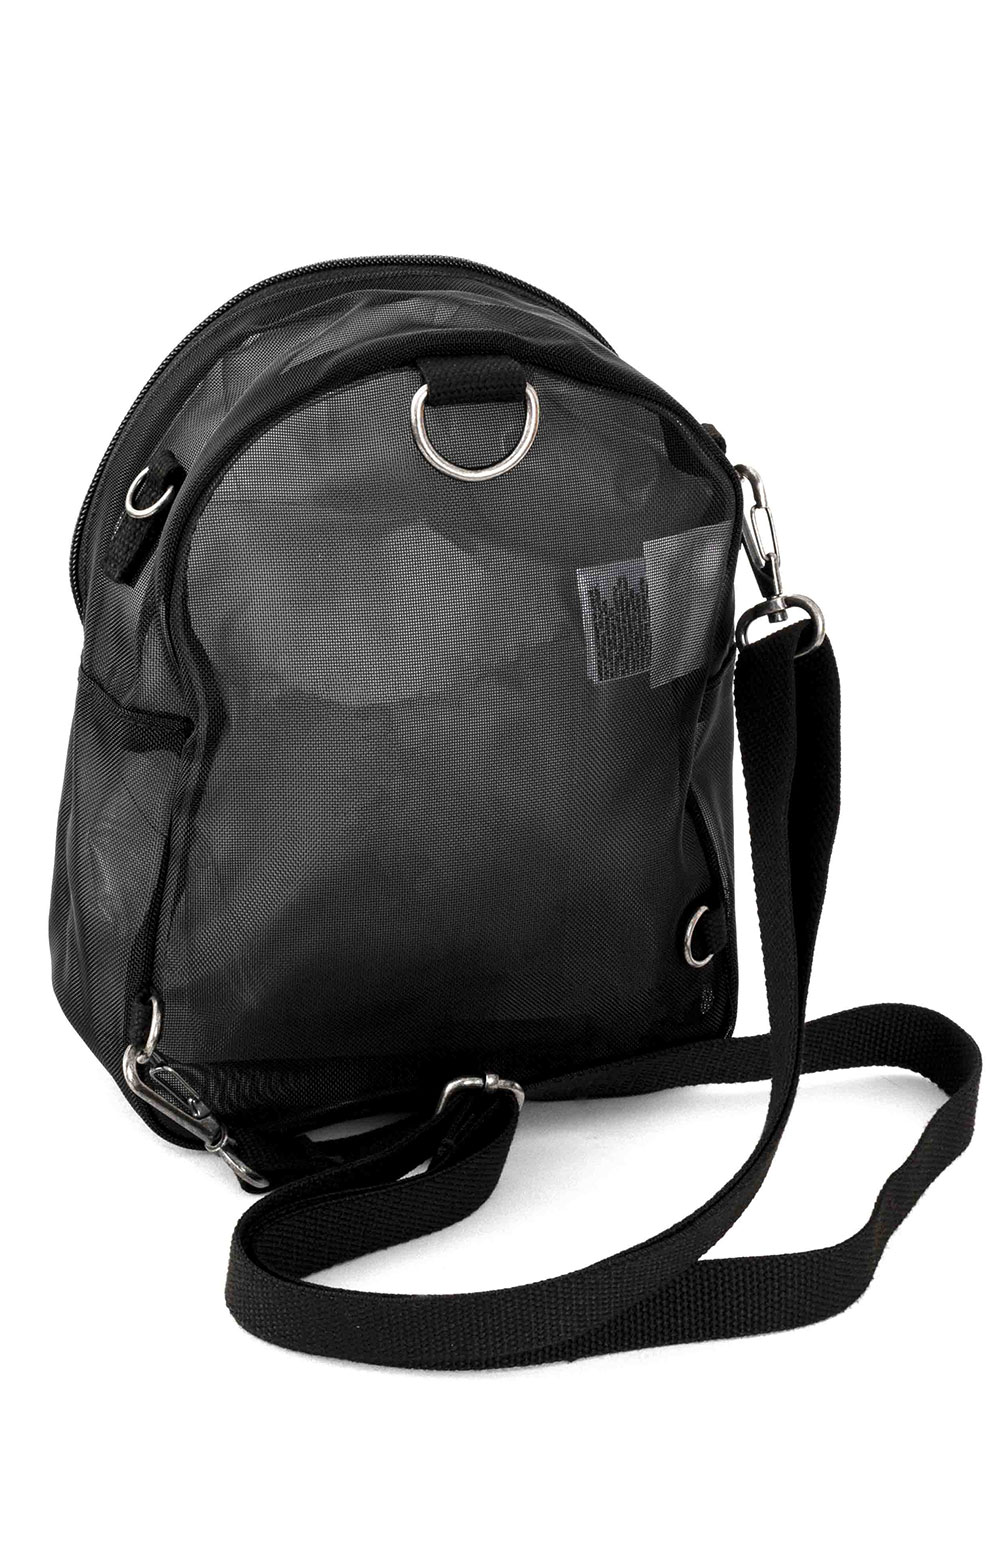 Two Timing Mesh Mini Backpack/Bag - Black 3